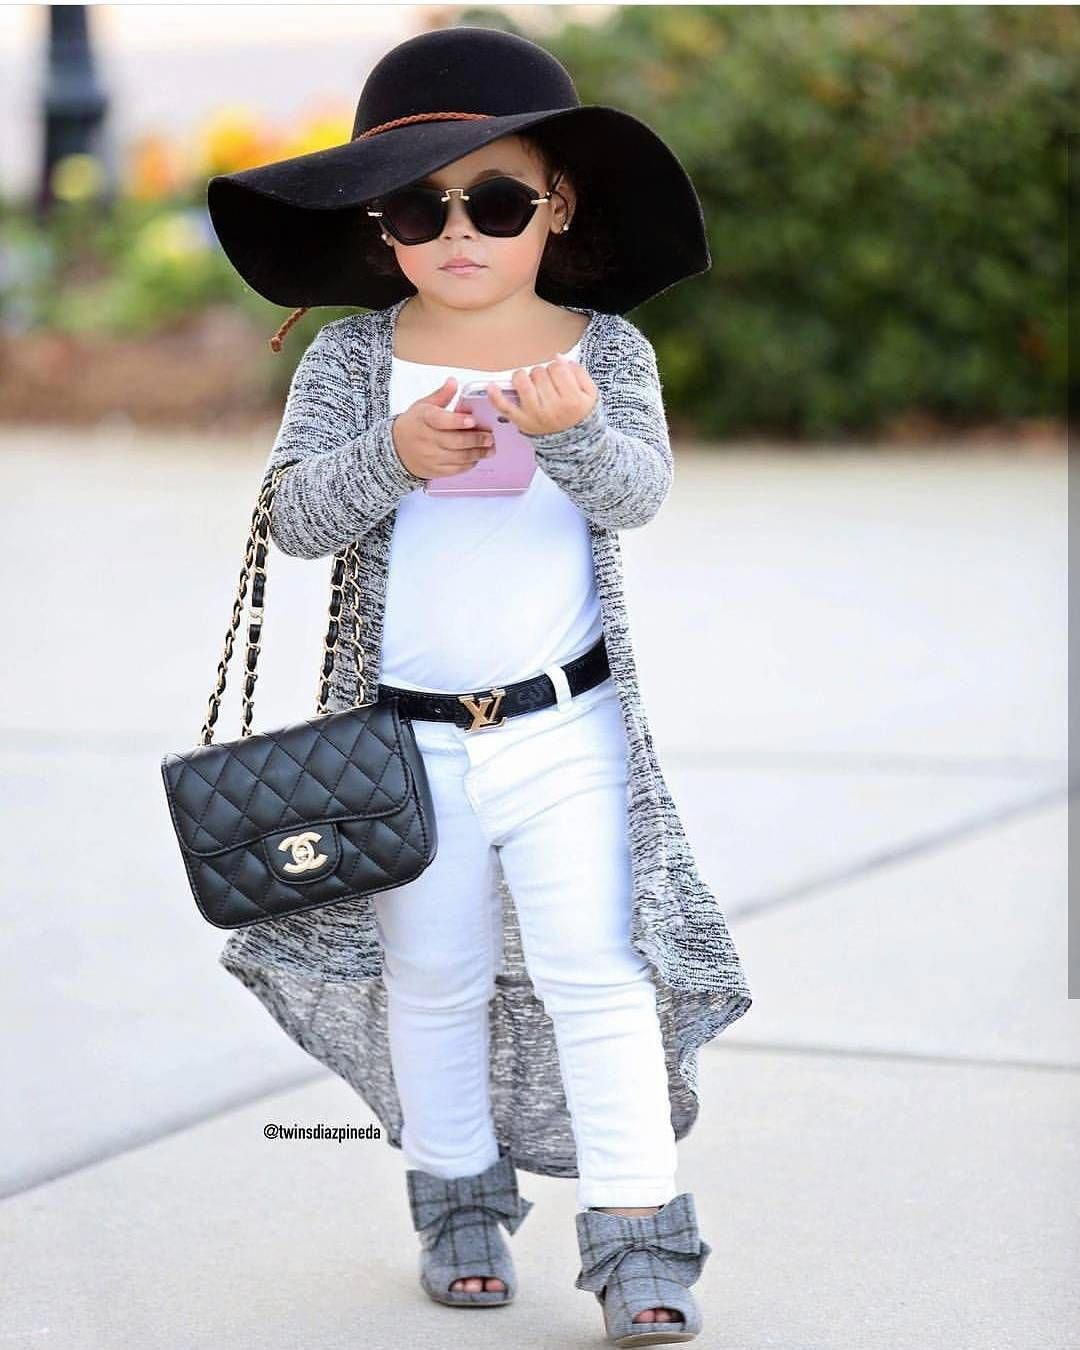 Cute Dresses For 7 Year Olds  Kids Clothing Stores Online  Old